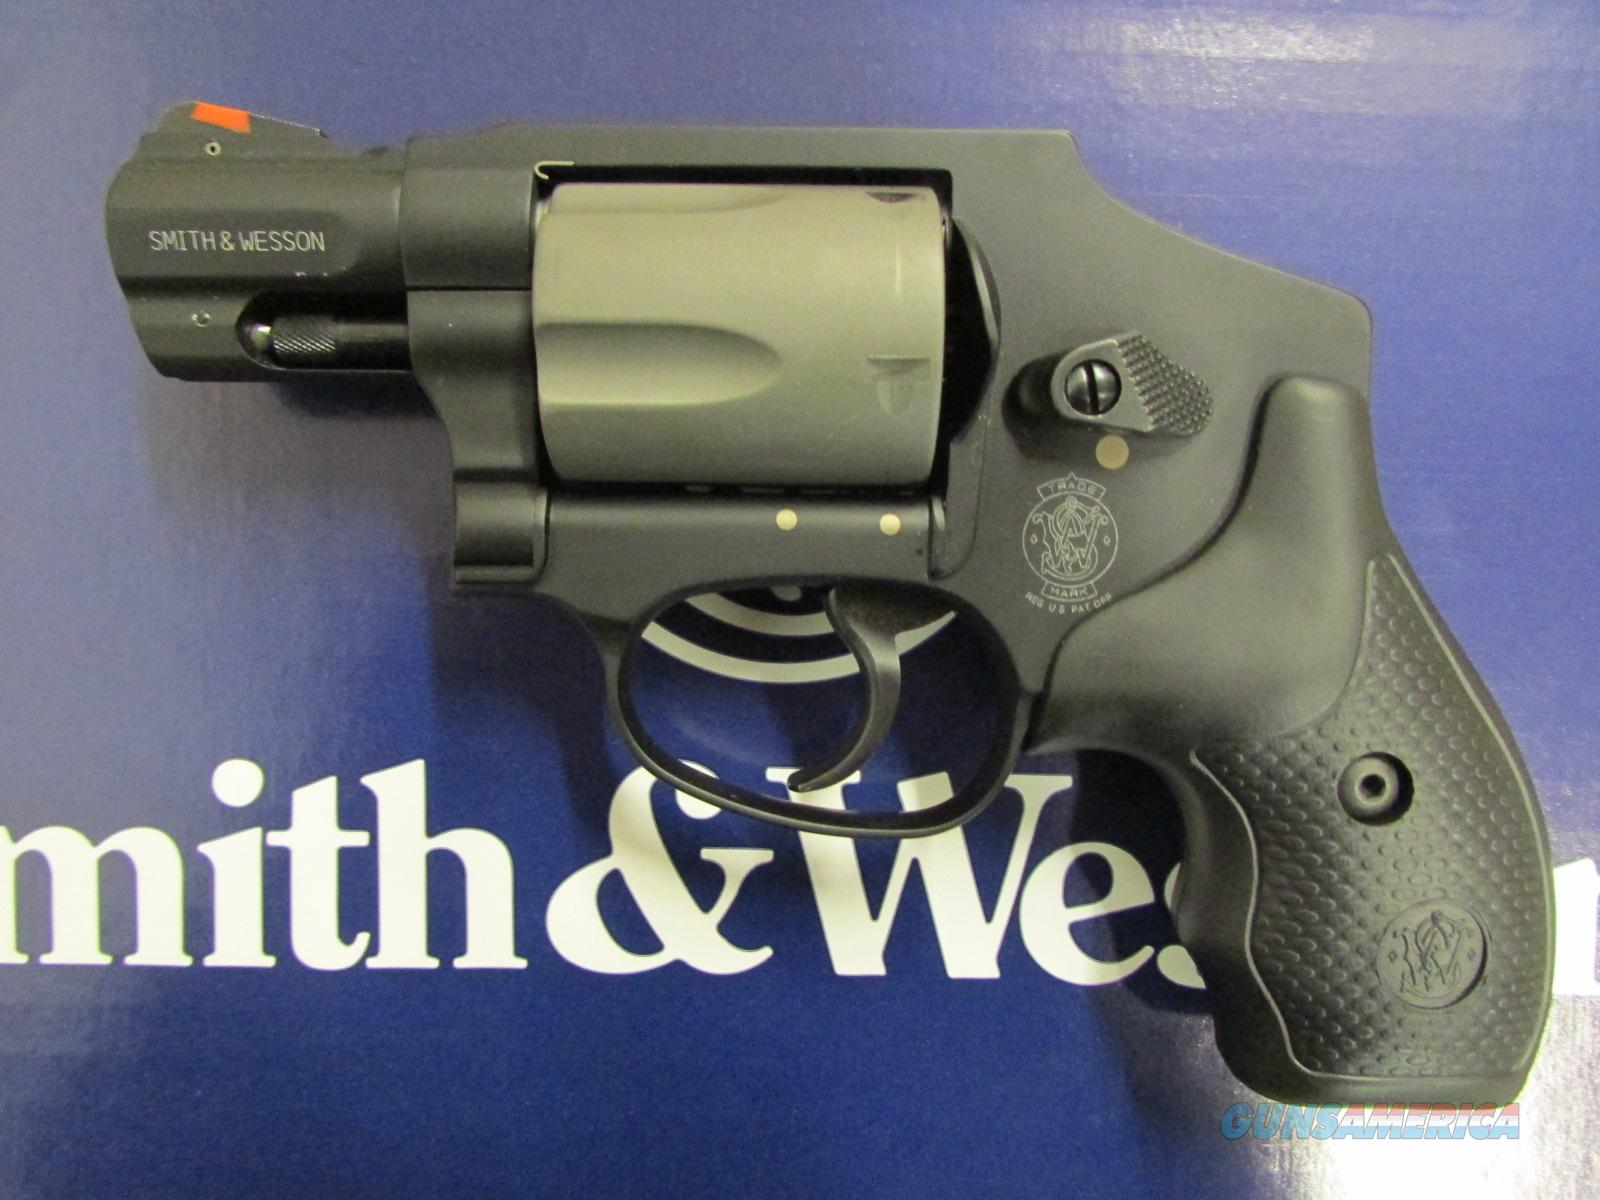 "Smith & Wesson Model 340PD 1.87"" Red Ramp Sight .357 Magnum 103061  Guns > Pistols > Smith & Wesson Revolvers > Full Frame Revolver"